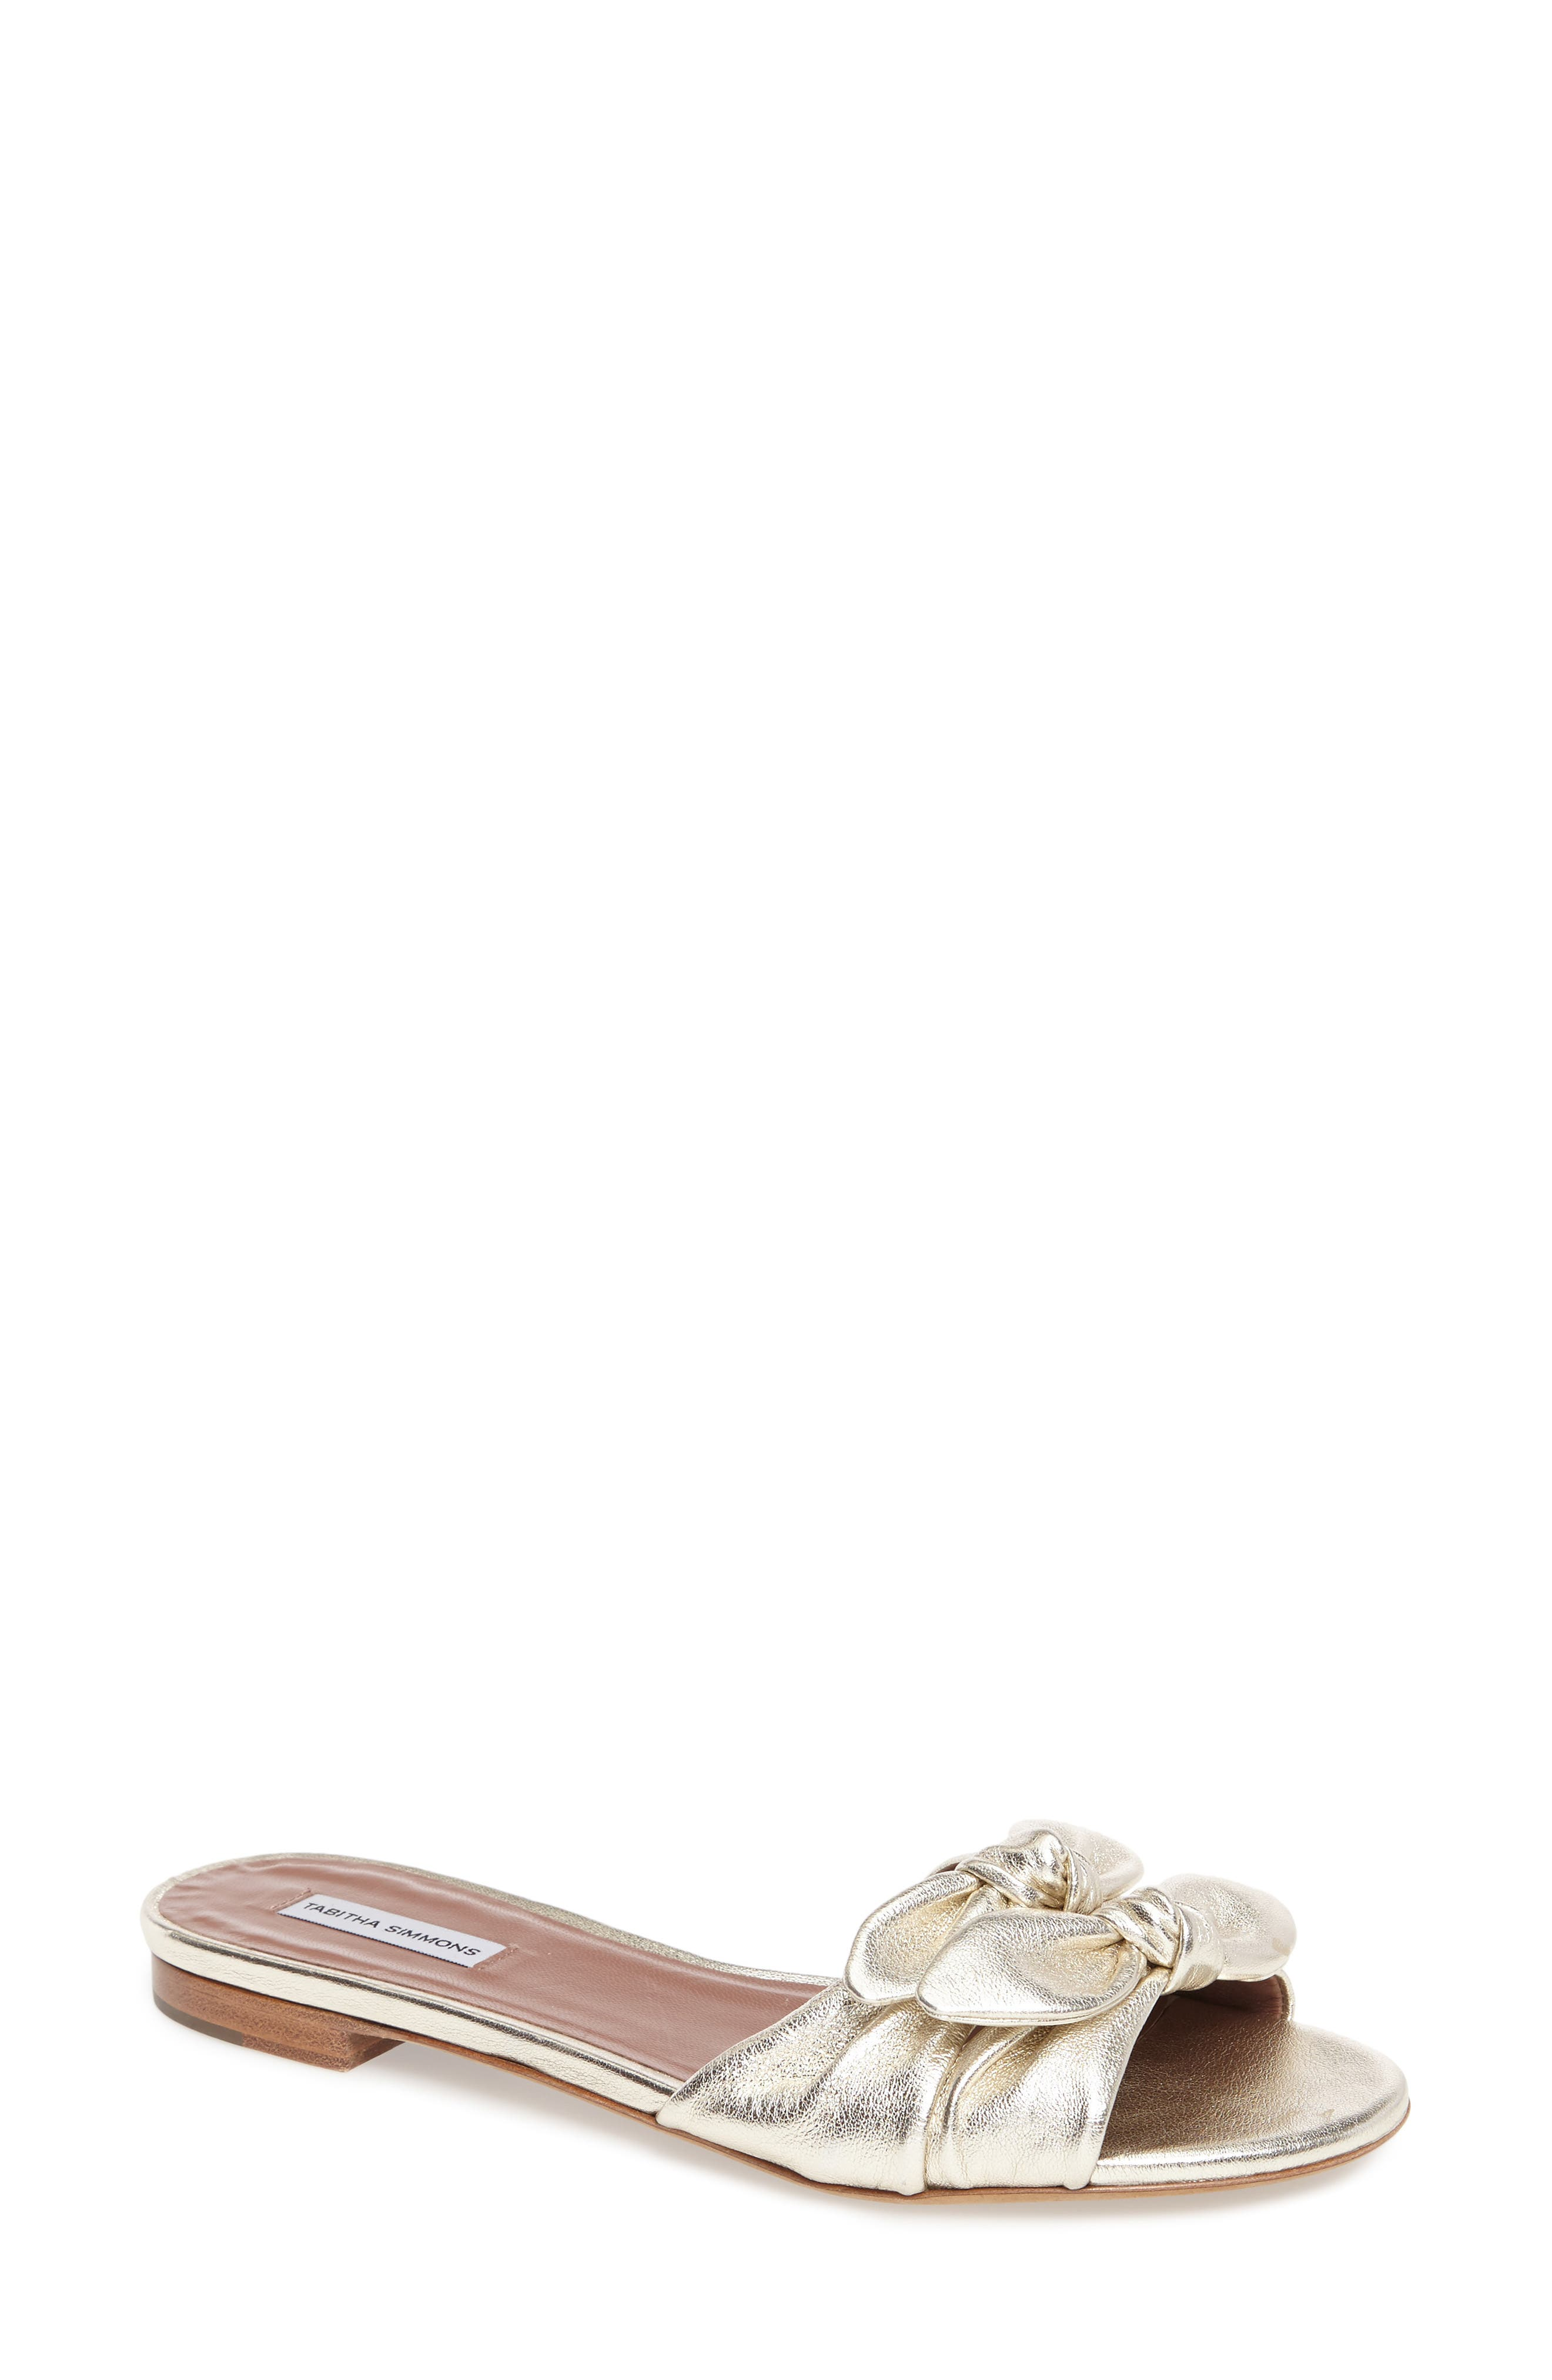 Cleo Knotted Bow Slide Sandal,                             Main thumbnail 1, color,                             040